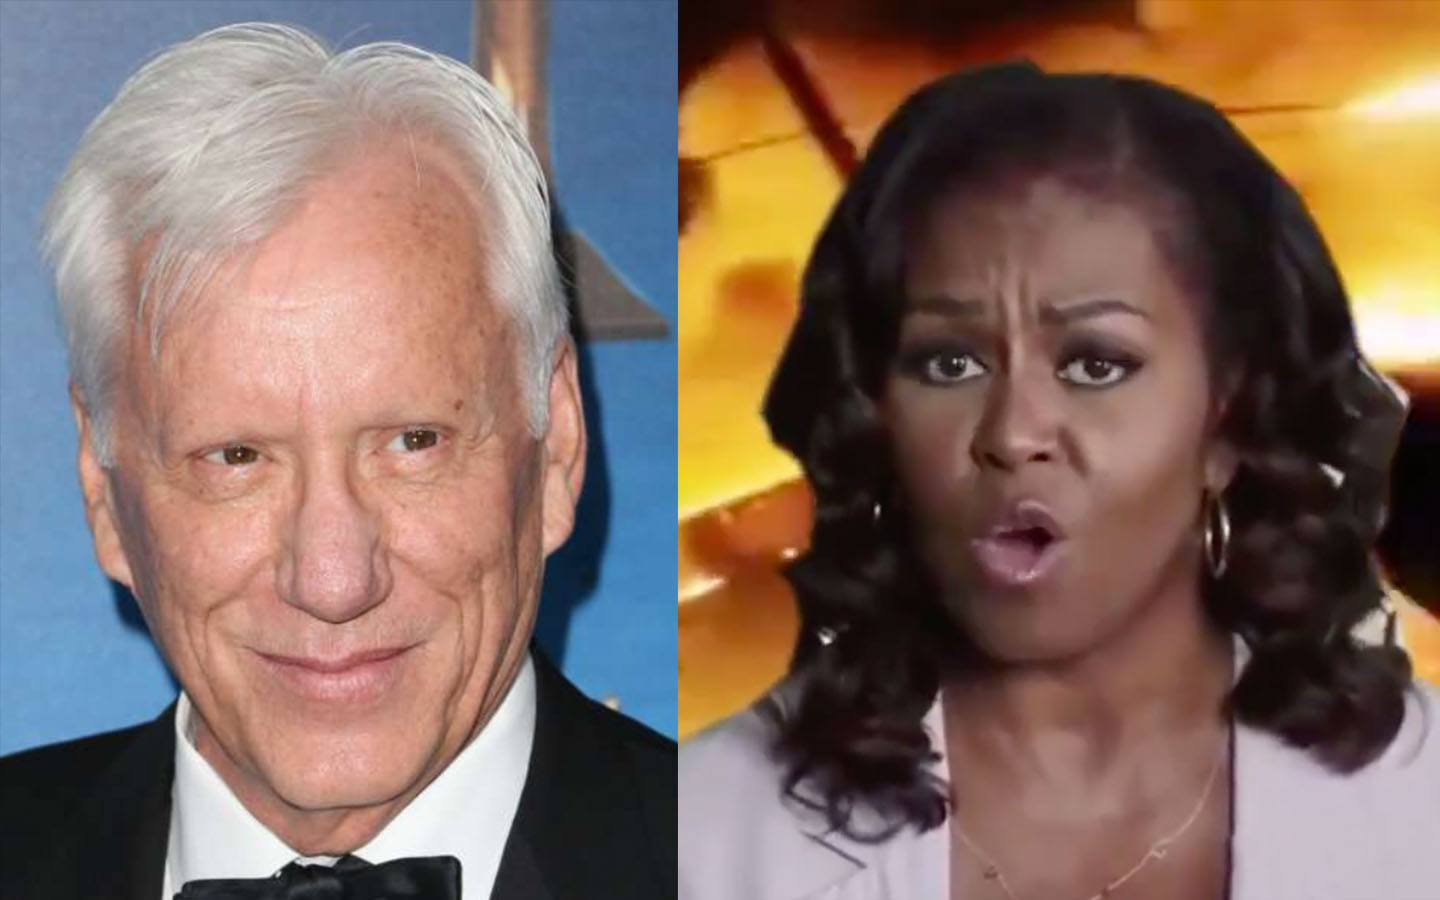 [WATCH] James Woods Posts a Video Exposing Michelle Obama's Unbelievable Hypocrisy